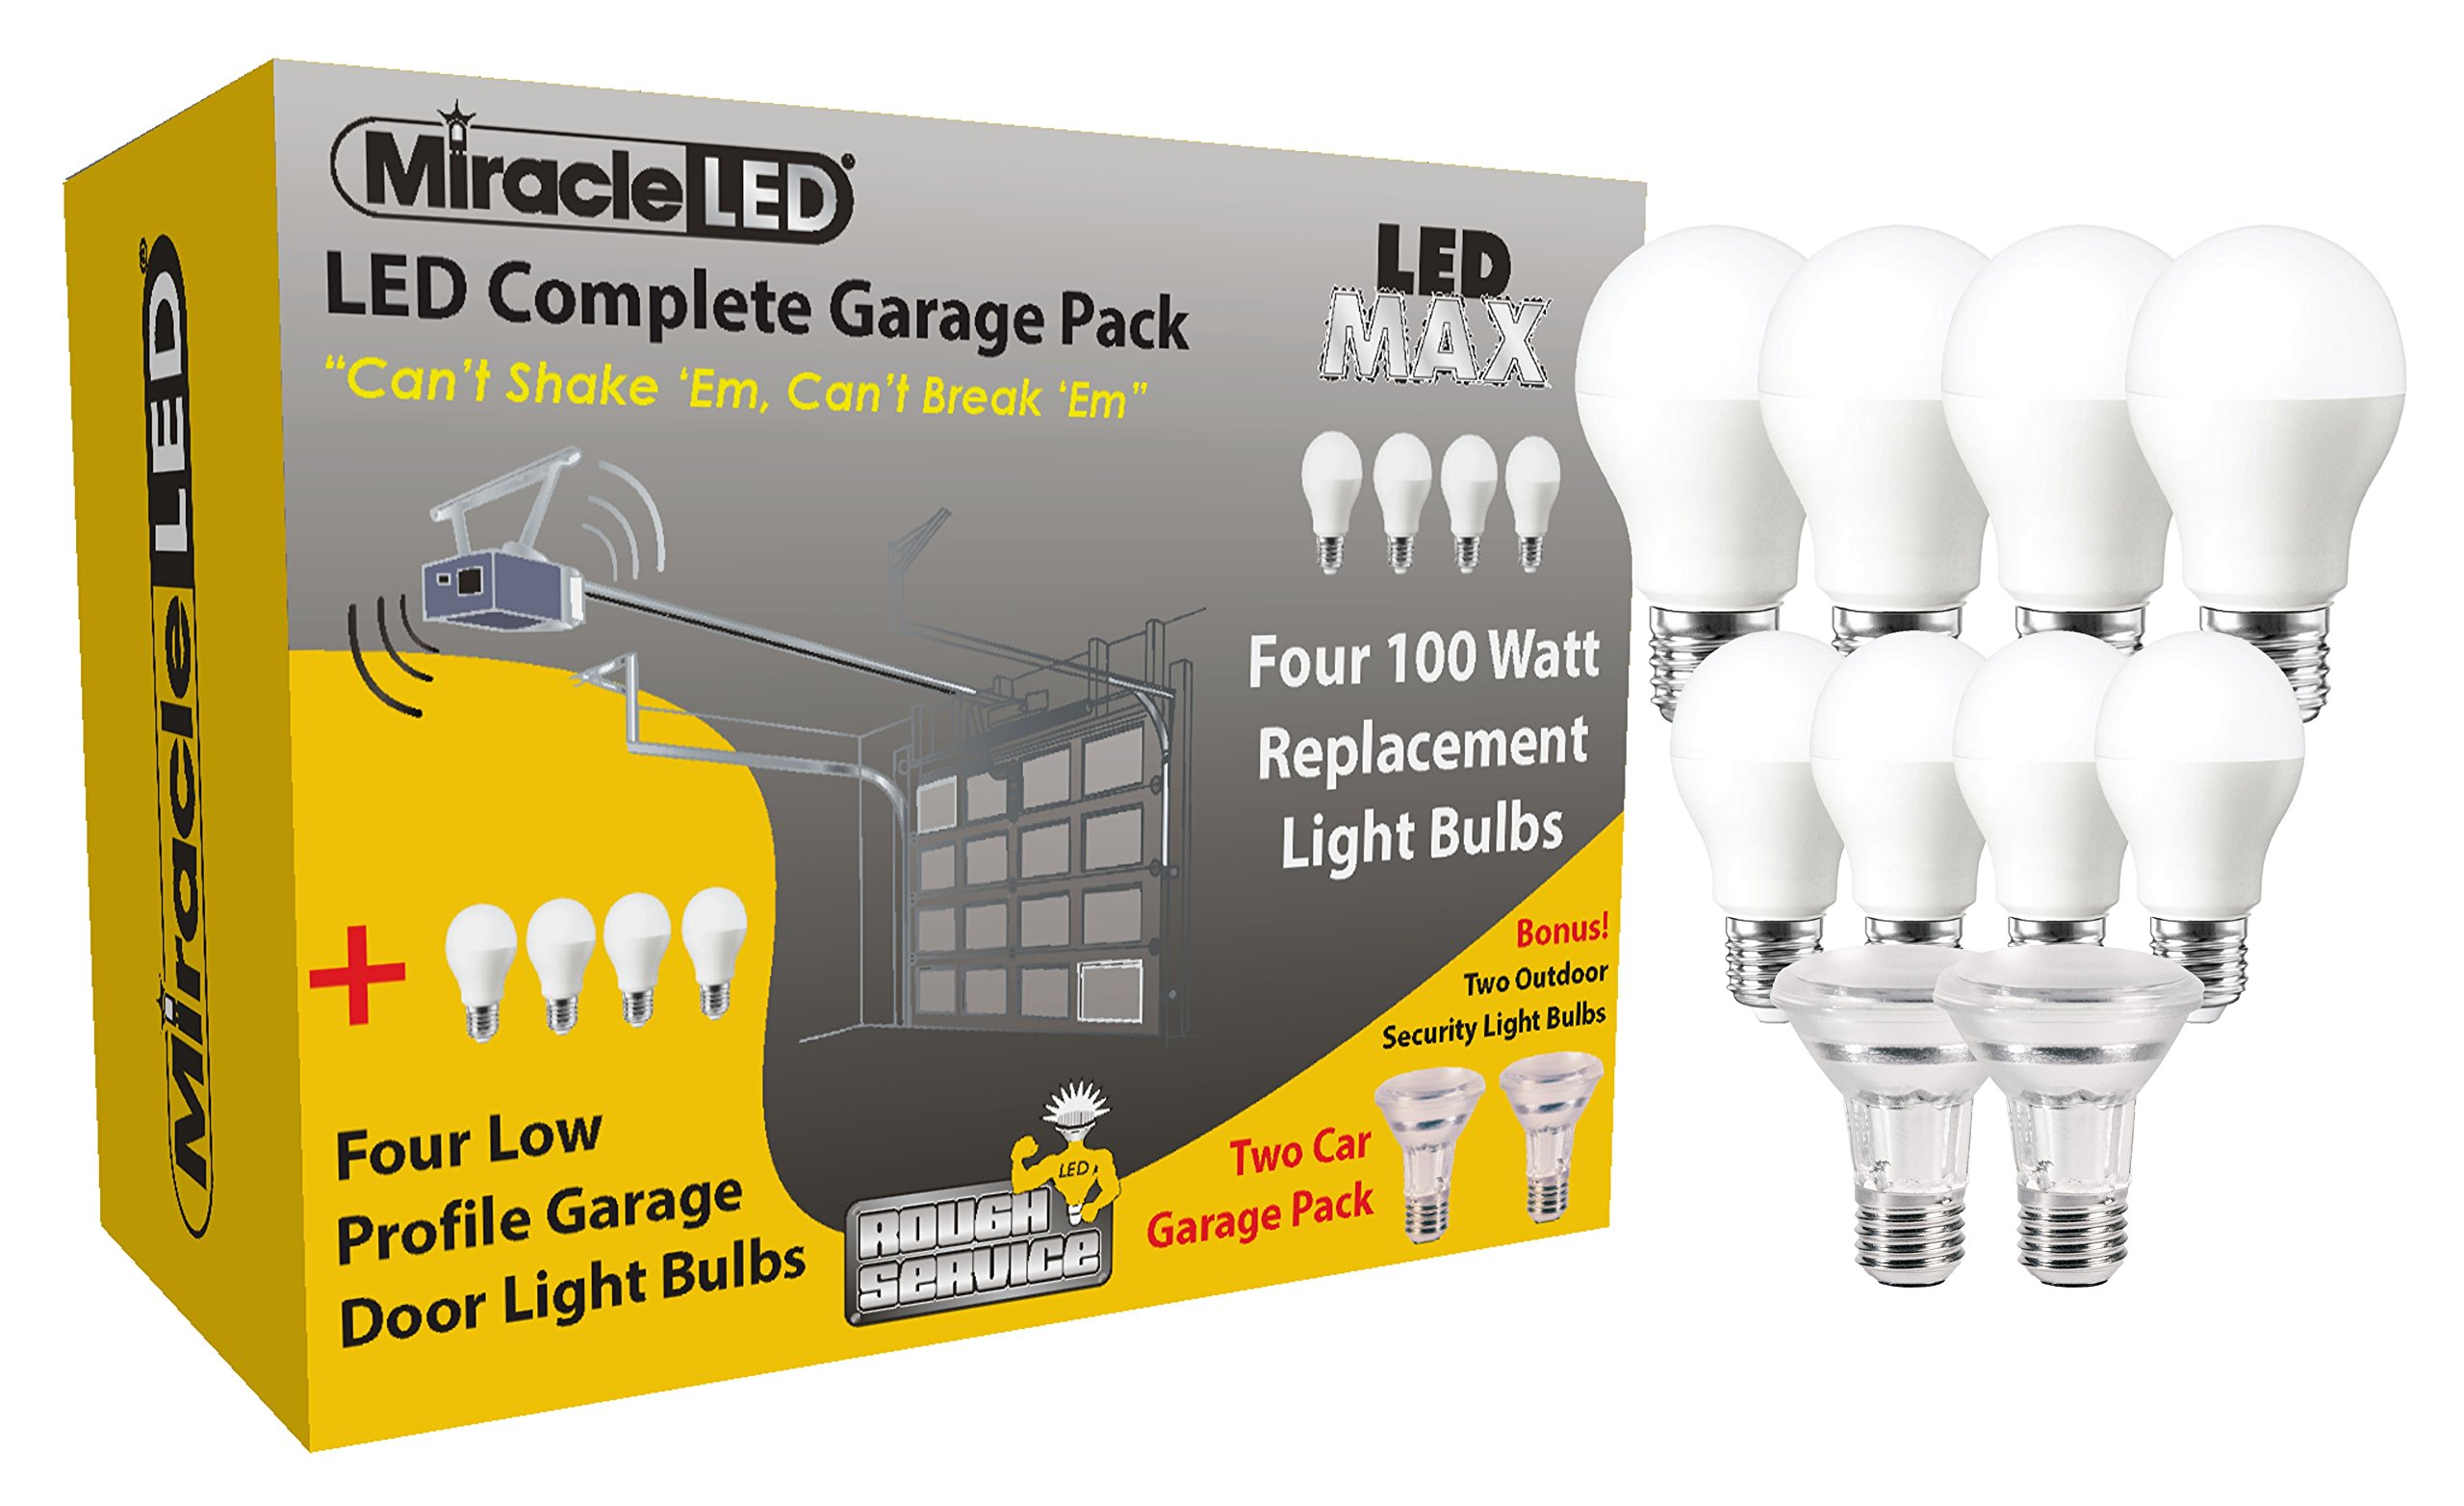 MiracleLED 604239 Rough Service Ultimate LED Two Car Complete Garage Lighting Pack (10 Pack)